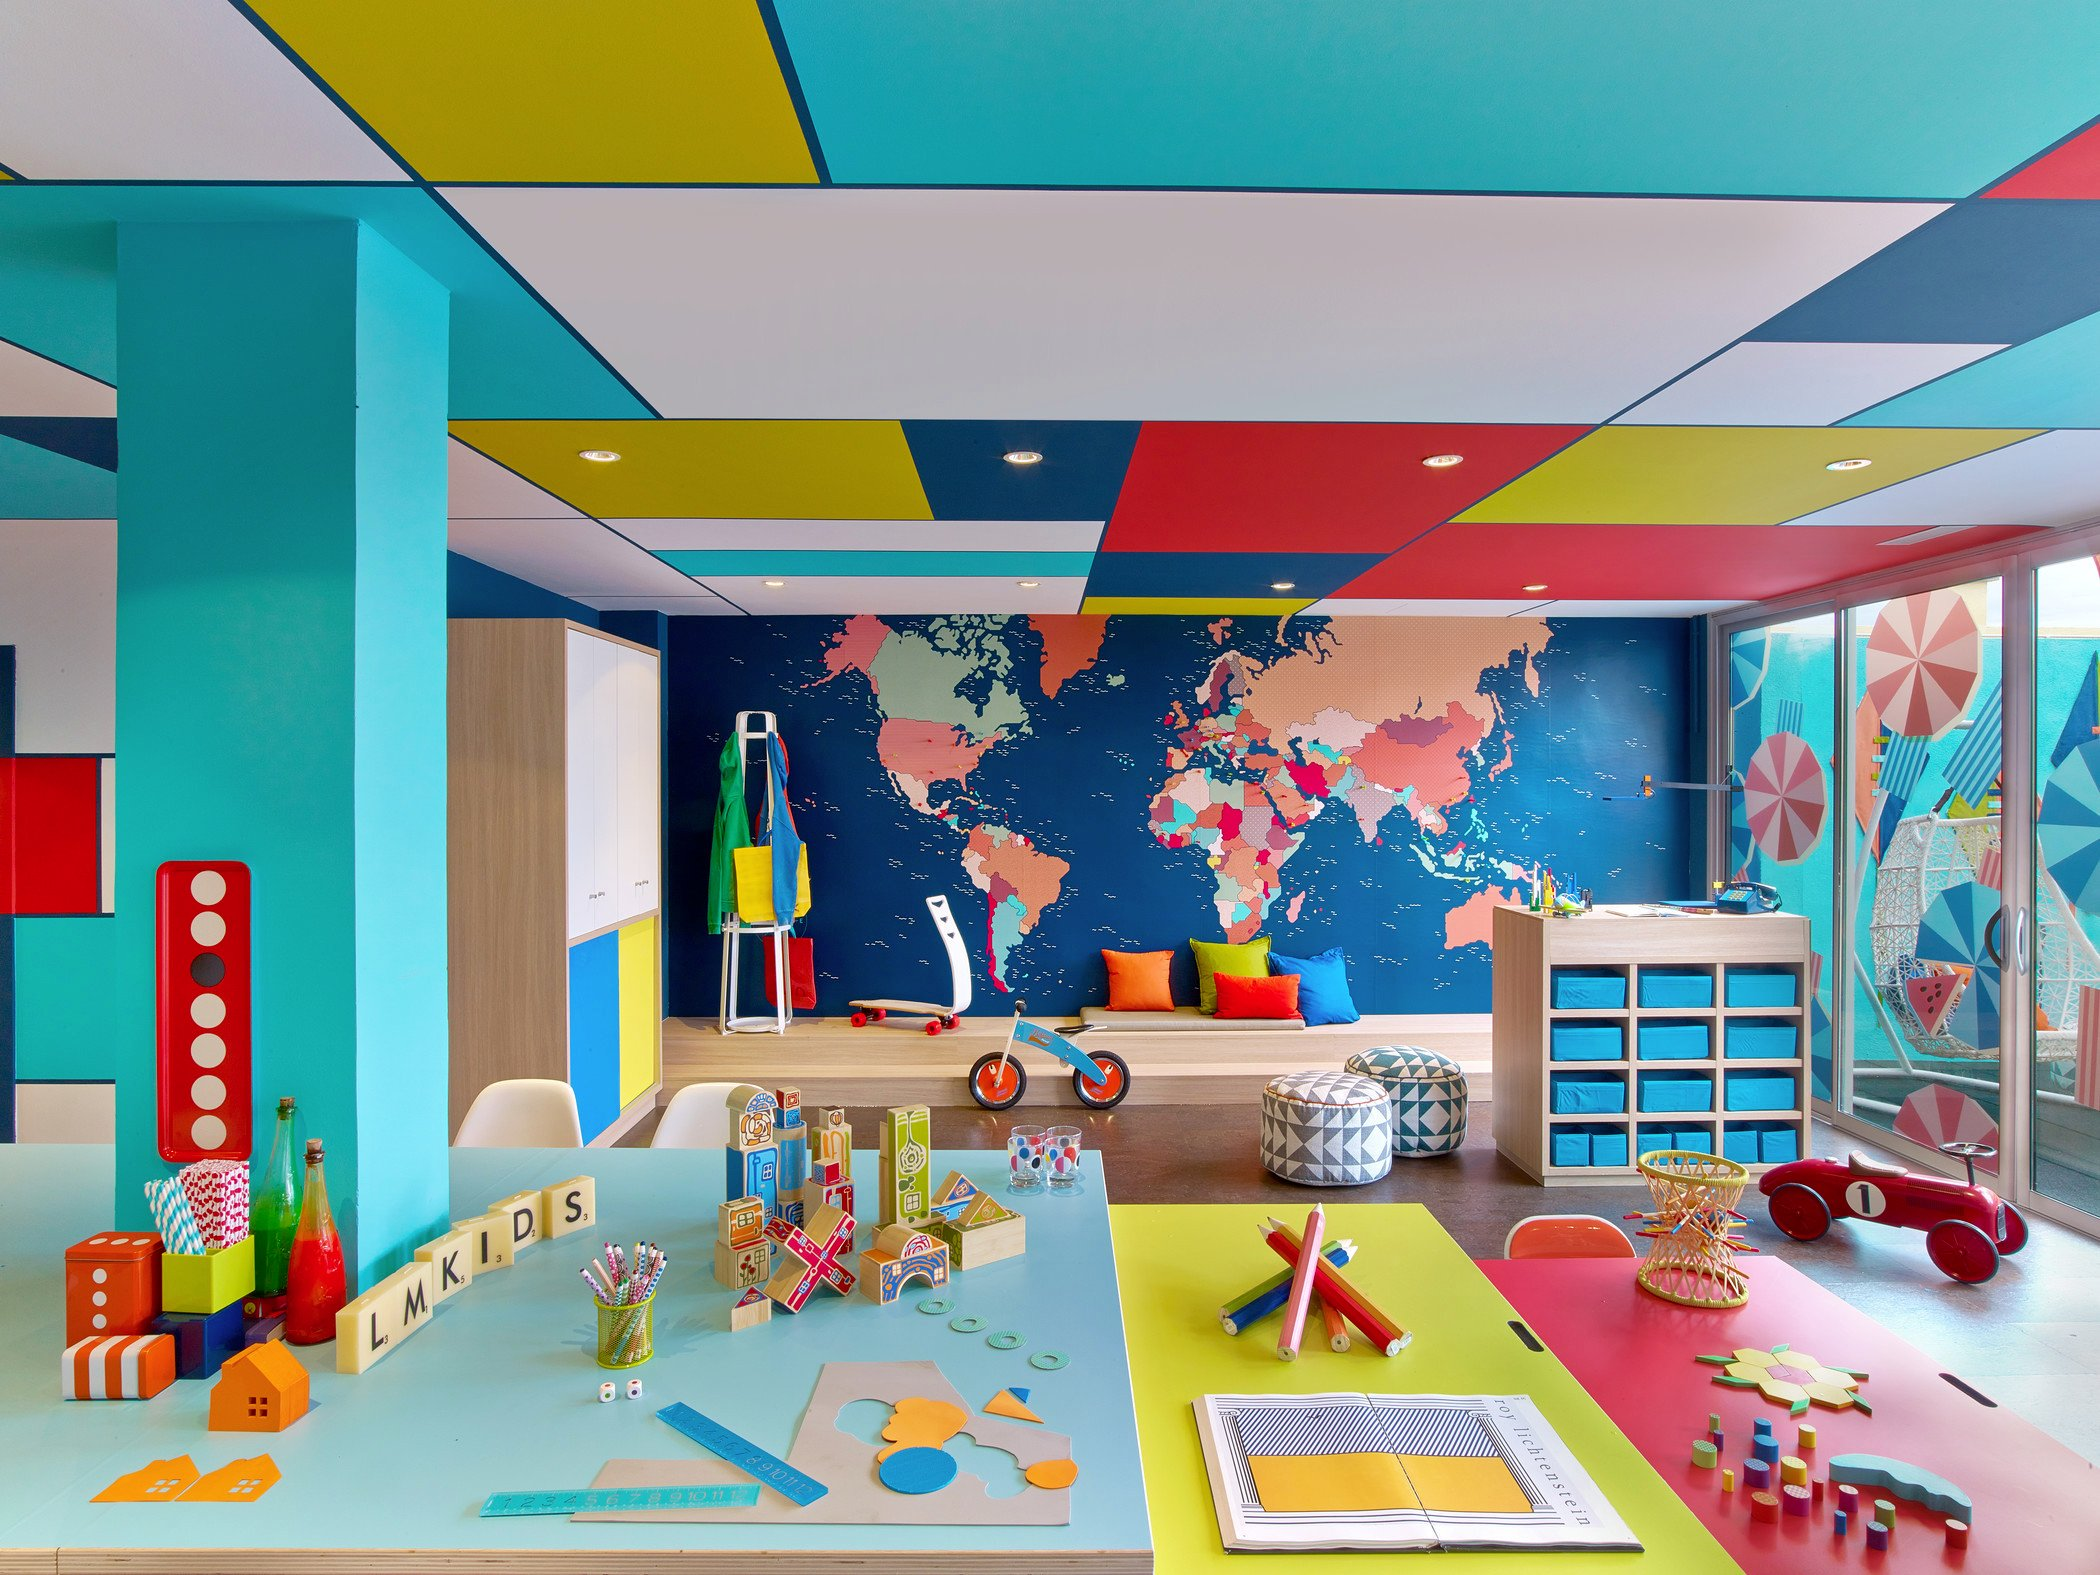 Barcelona Bedroom Set Play Time Reimagined Le Meridien And Westin Hotels